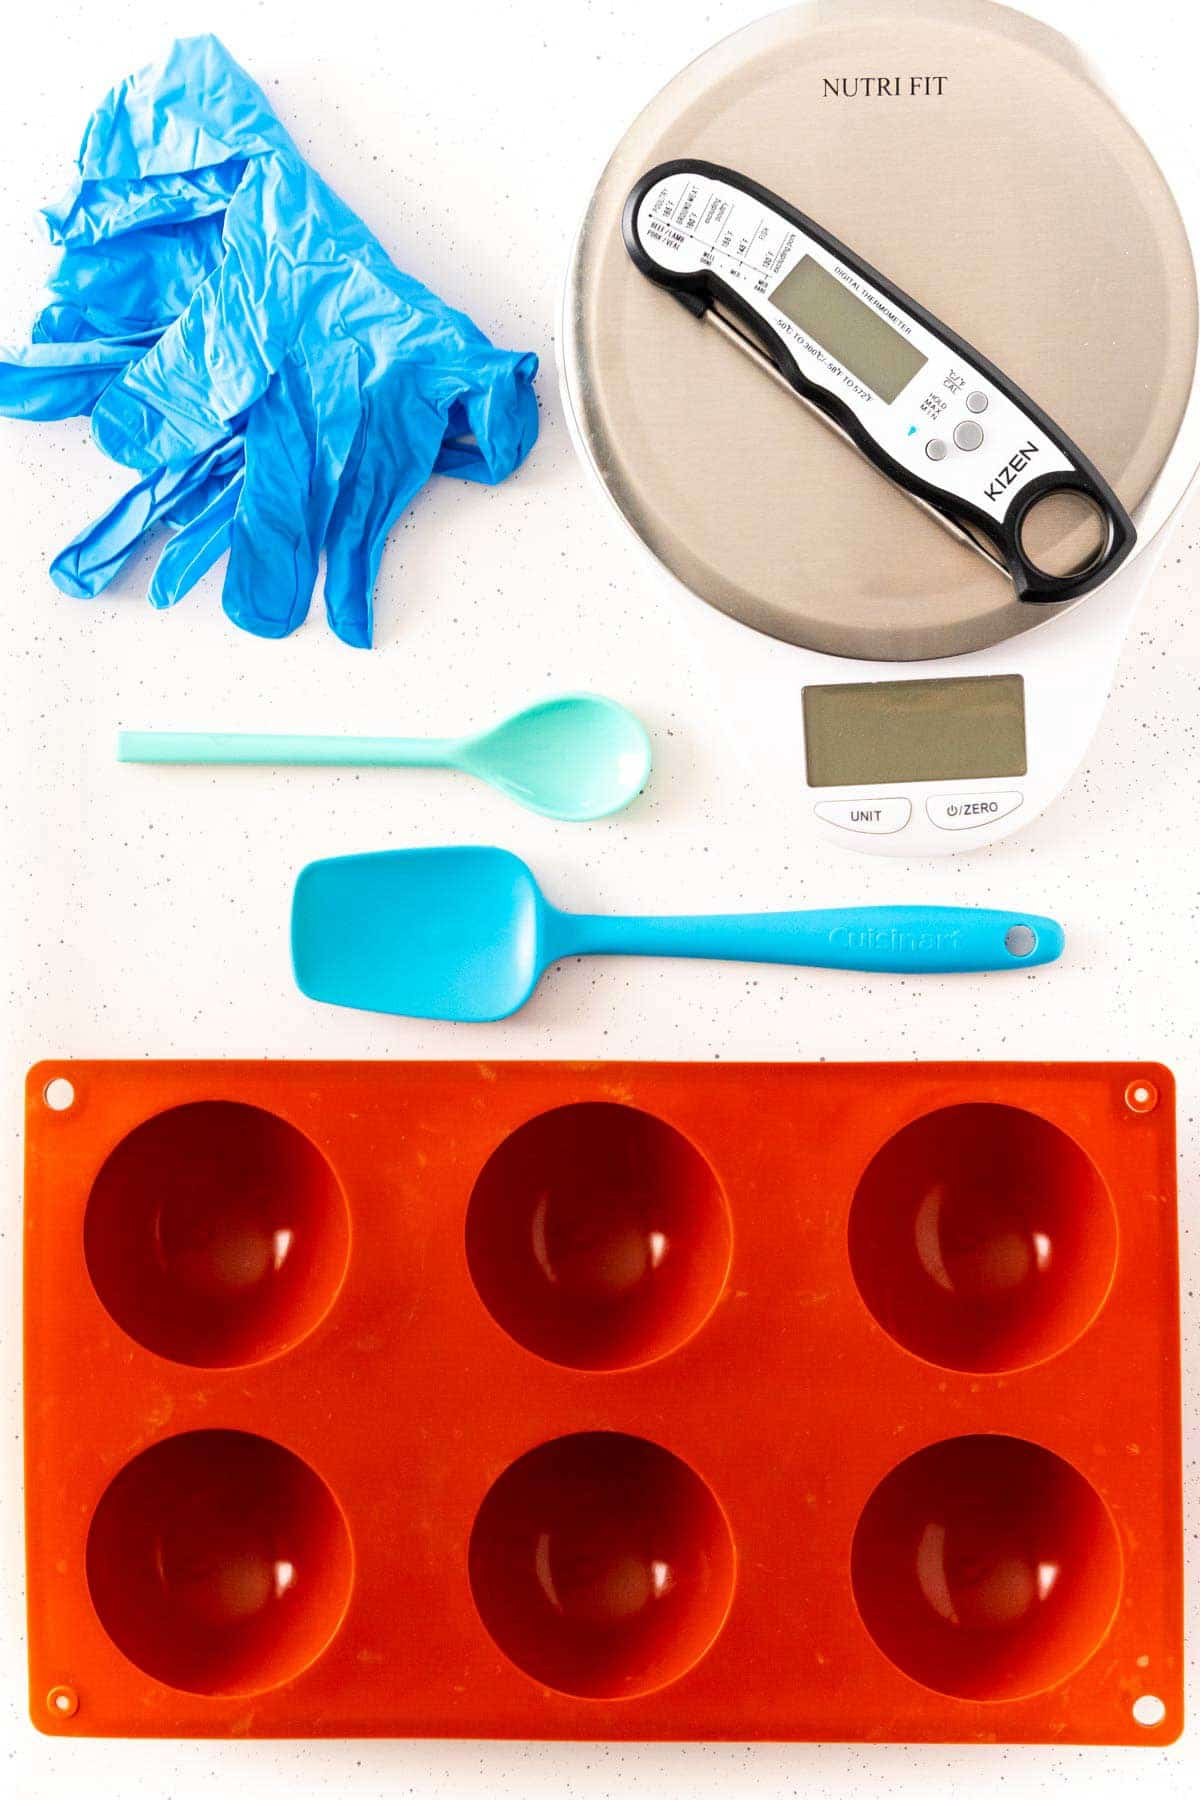 Supplies needed to make how chocolate bombs